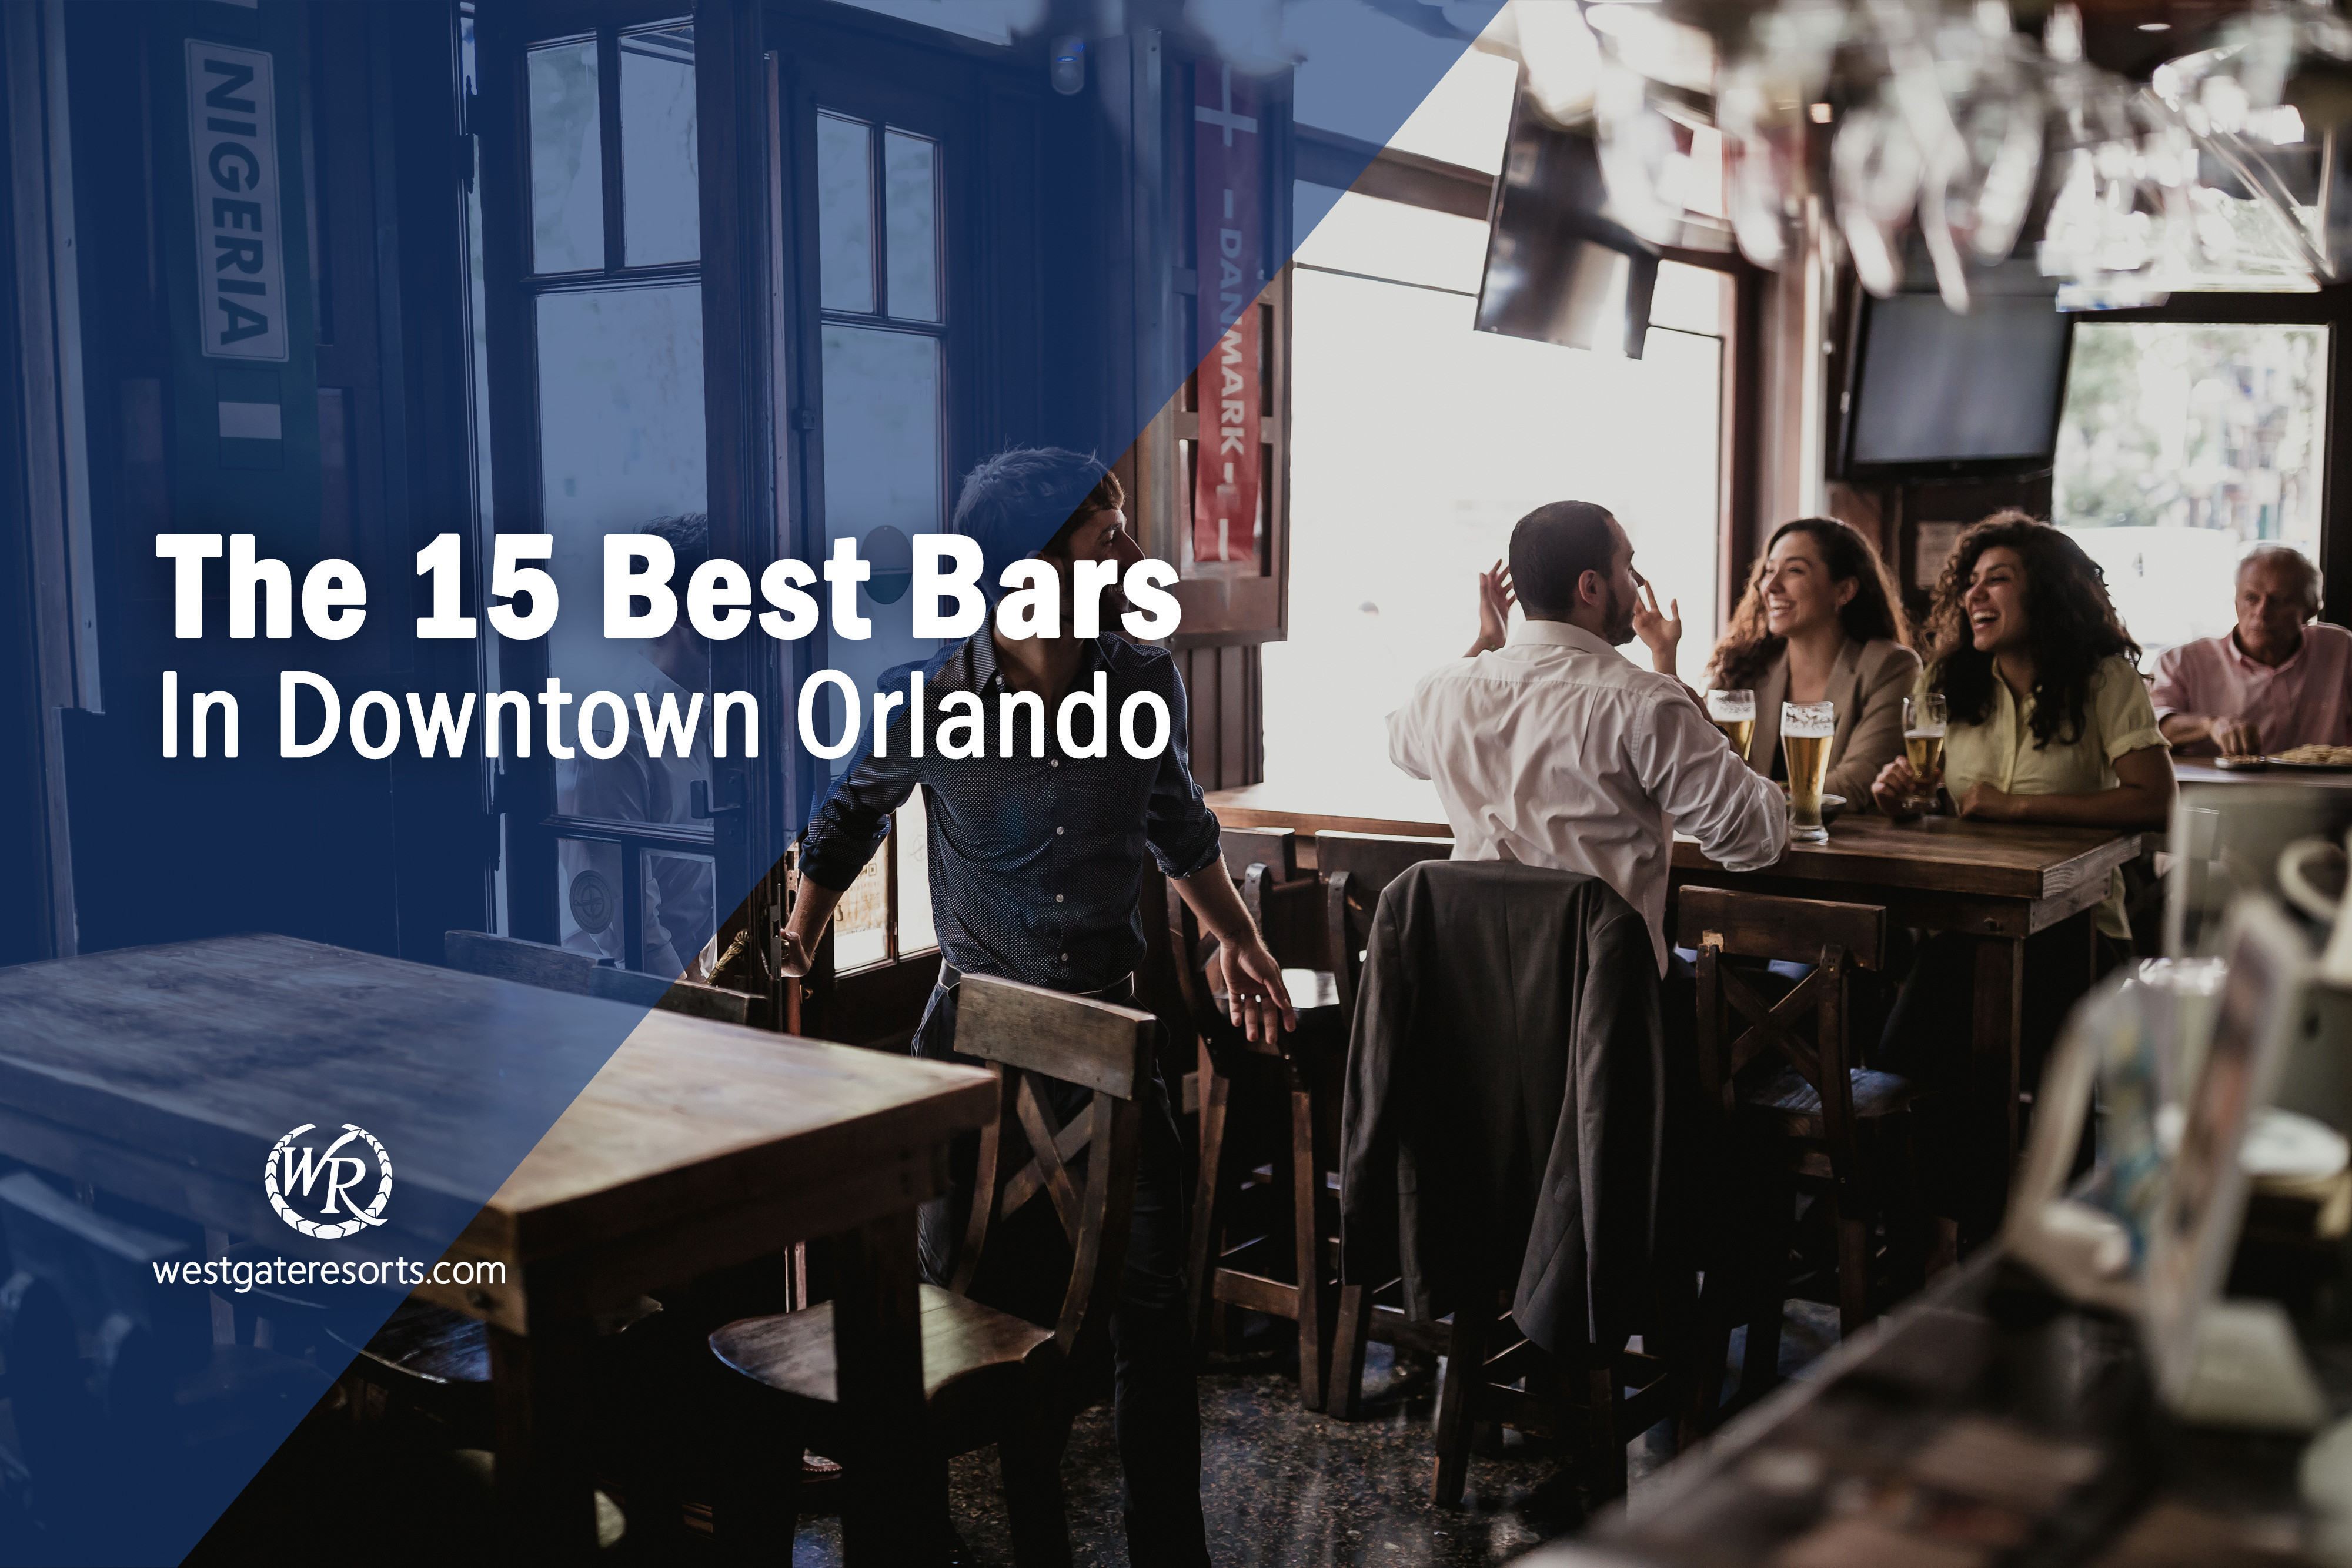 The 15 Best Bars in Downtown Orlando